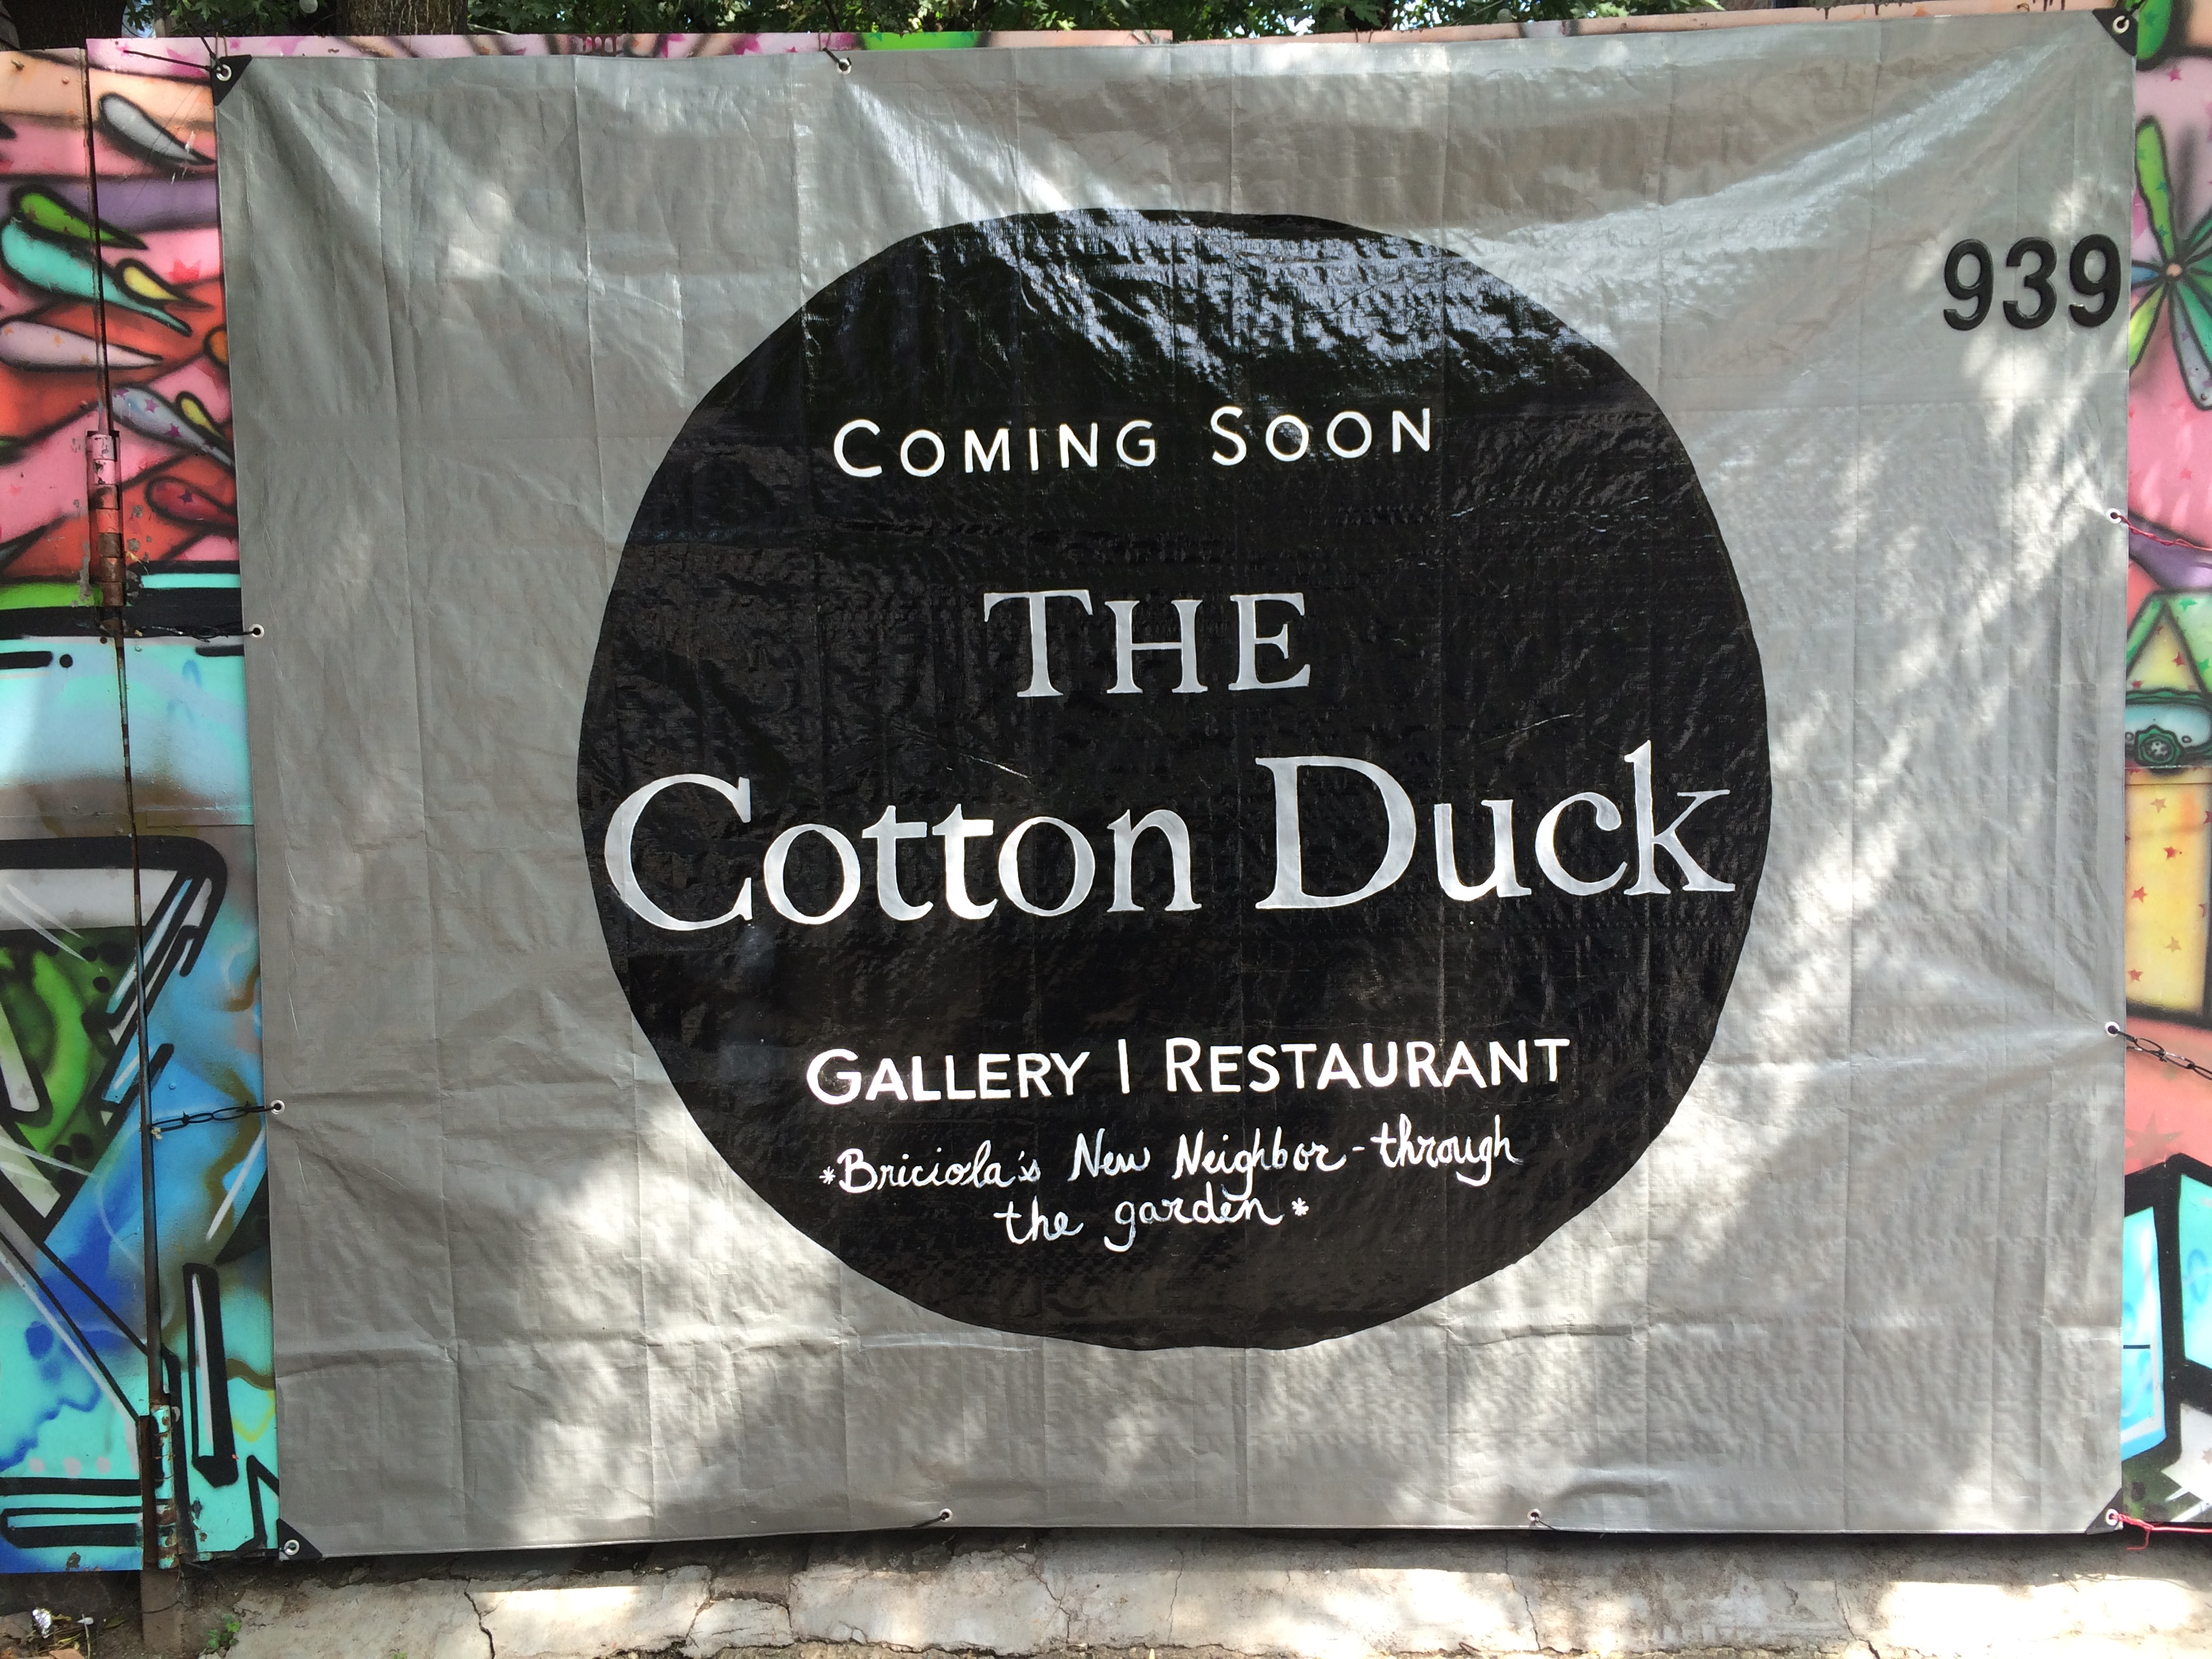 The Cotton Duck